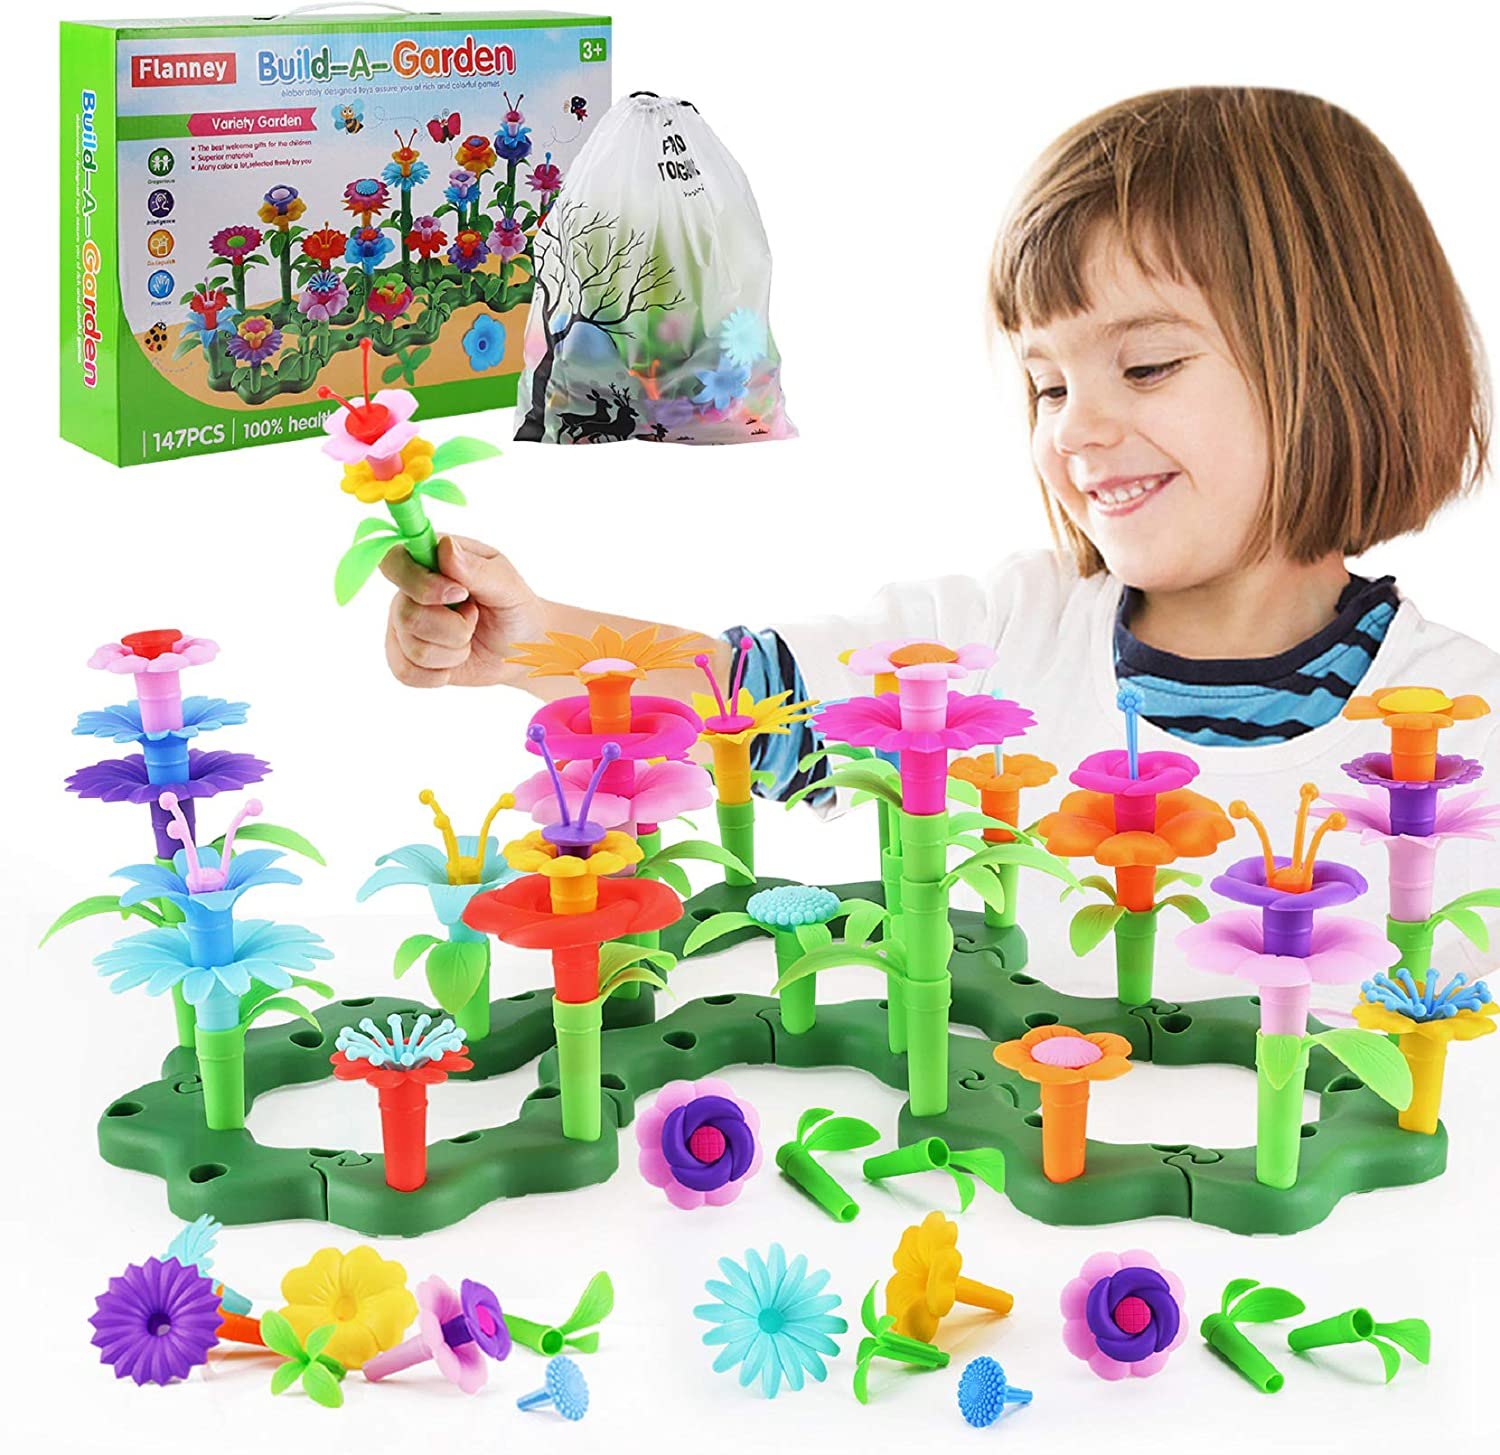 Flanney Flower Garden Building Toys, 147 Pcs Vibrant Colors DIY Floral Bouquet Arrangement, Assembly Garden Playset, Creative Educational Toy Gift for 3, 4, 5, 6 Year Old Girls Boys (with Storage Bag)